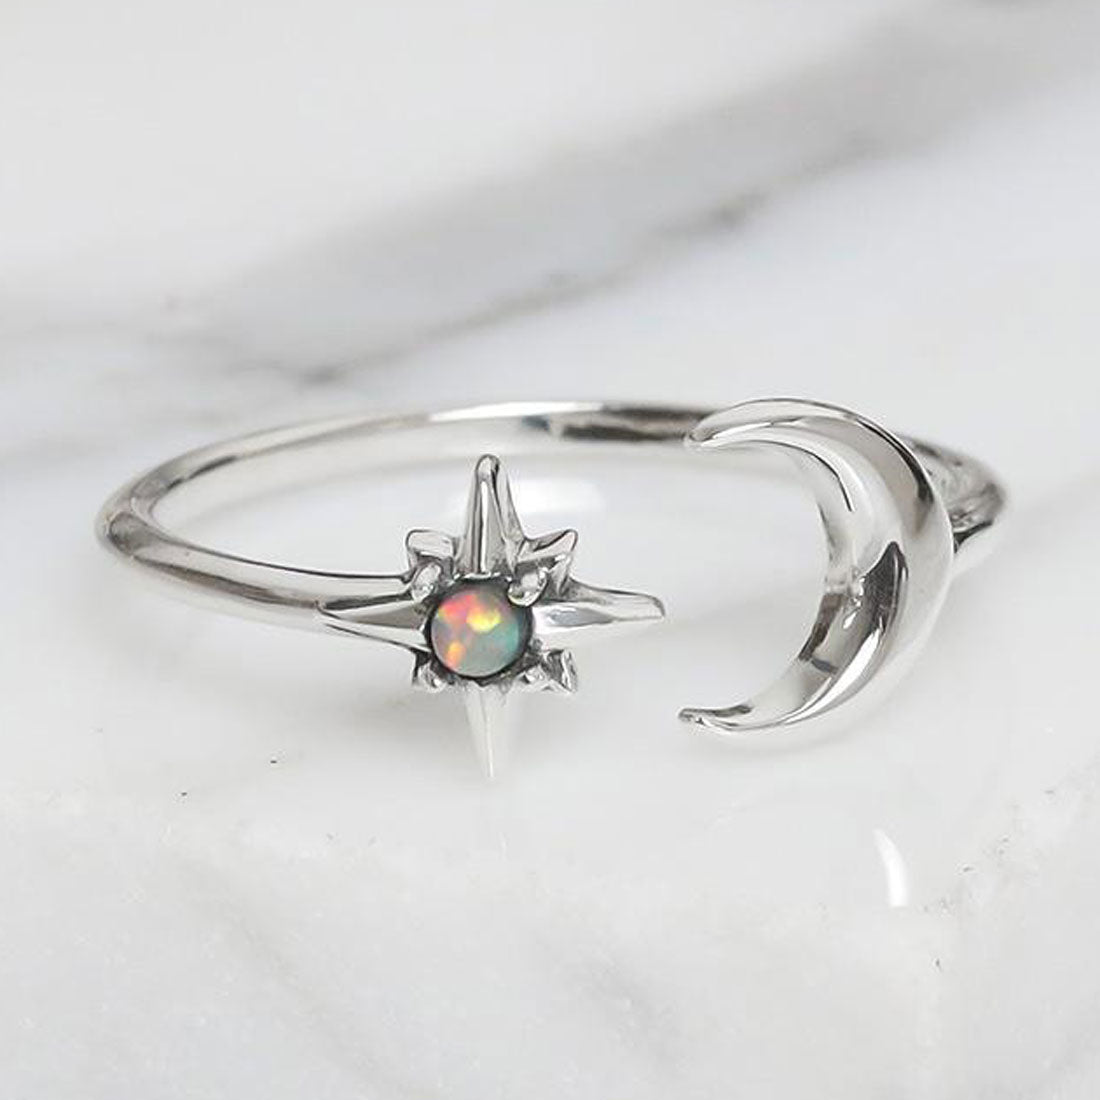 Midsummer Star Ring Nebula Dreams Opal Ring